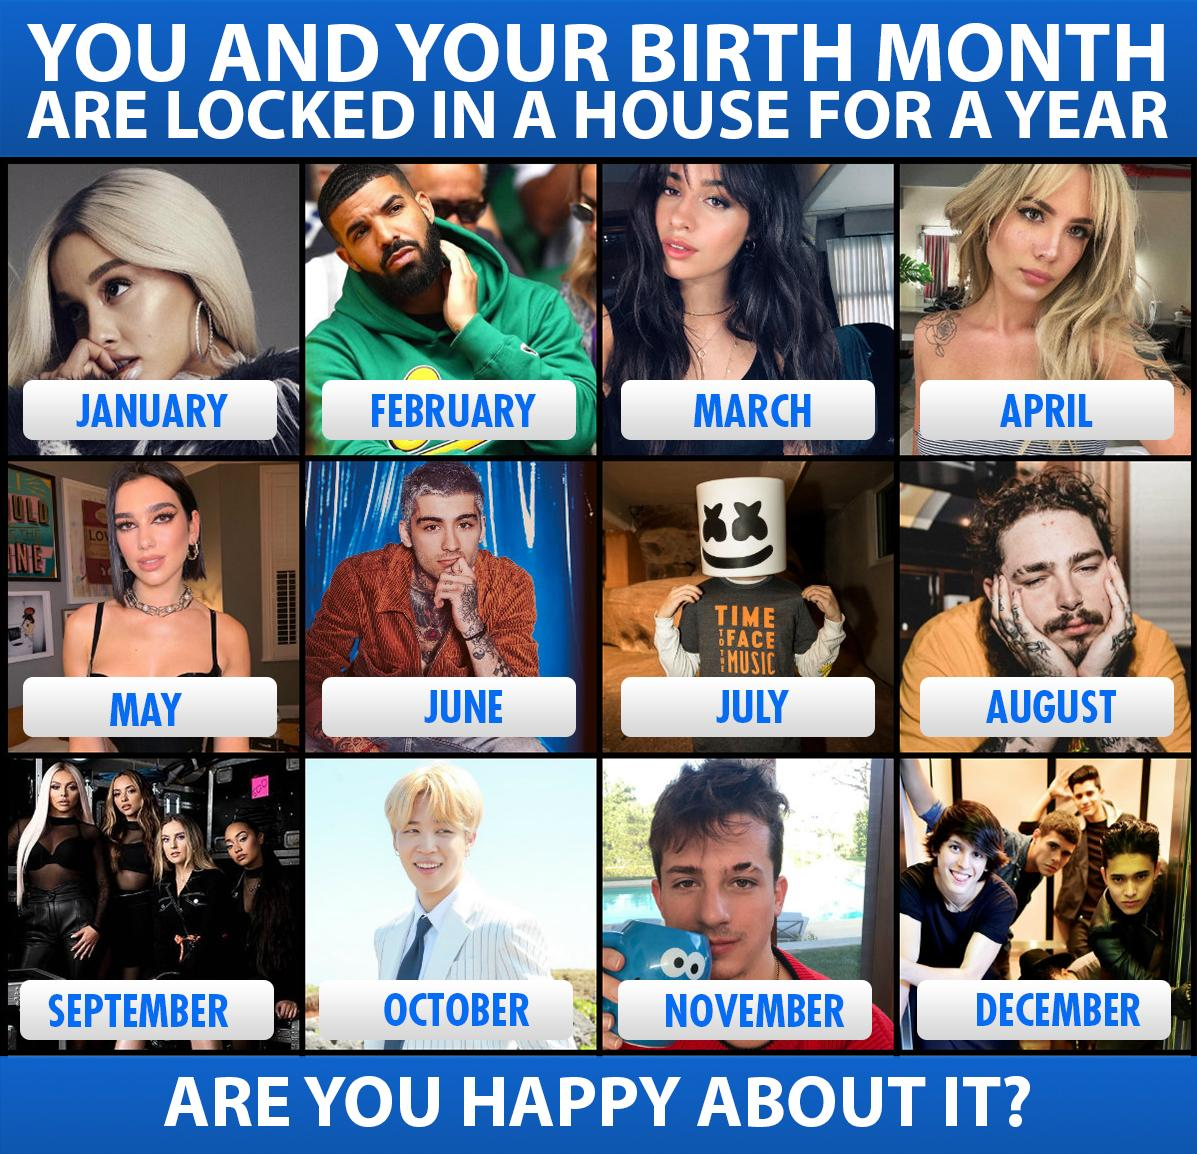 test Twitter Media - Who's your roomie for a year? Are you happy about it?  @ArianaGrande @Drake @Camila_Cabello @halsey @DUALIPA  @zaynmalik @marshmellomusic @PostMalone @LittleMix #Jimin @BTS_twt https://t.co/ml45YYAfze